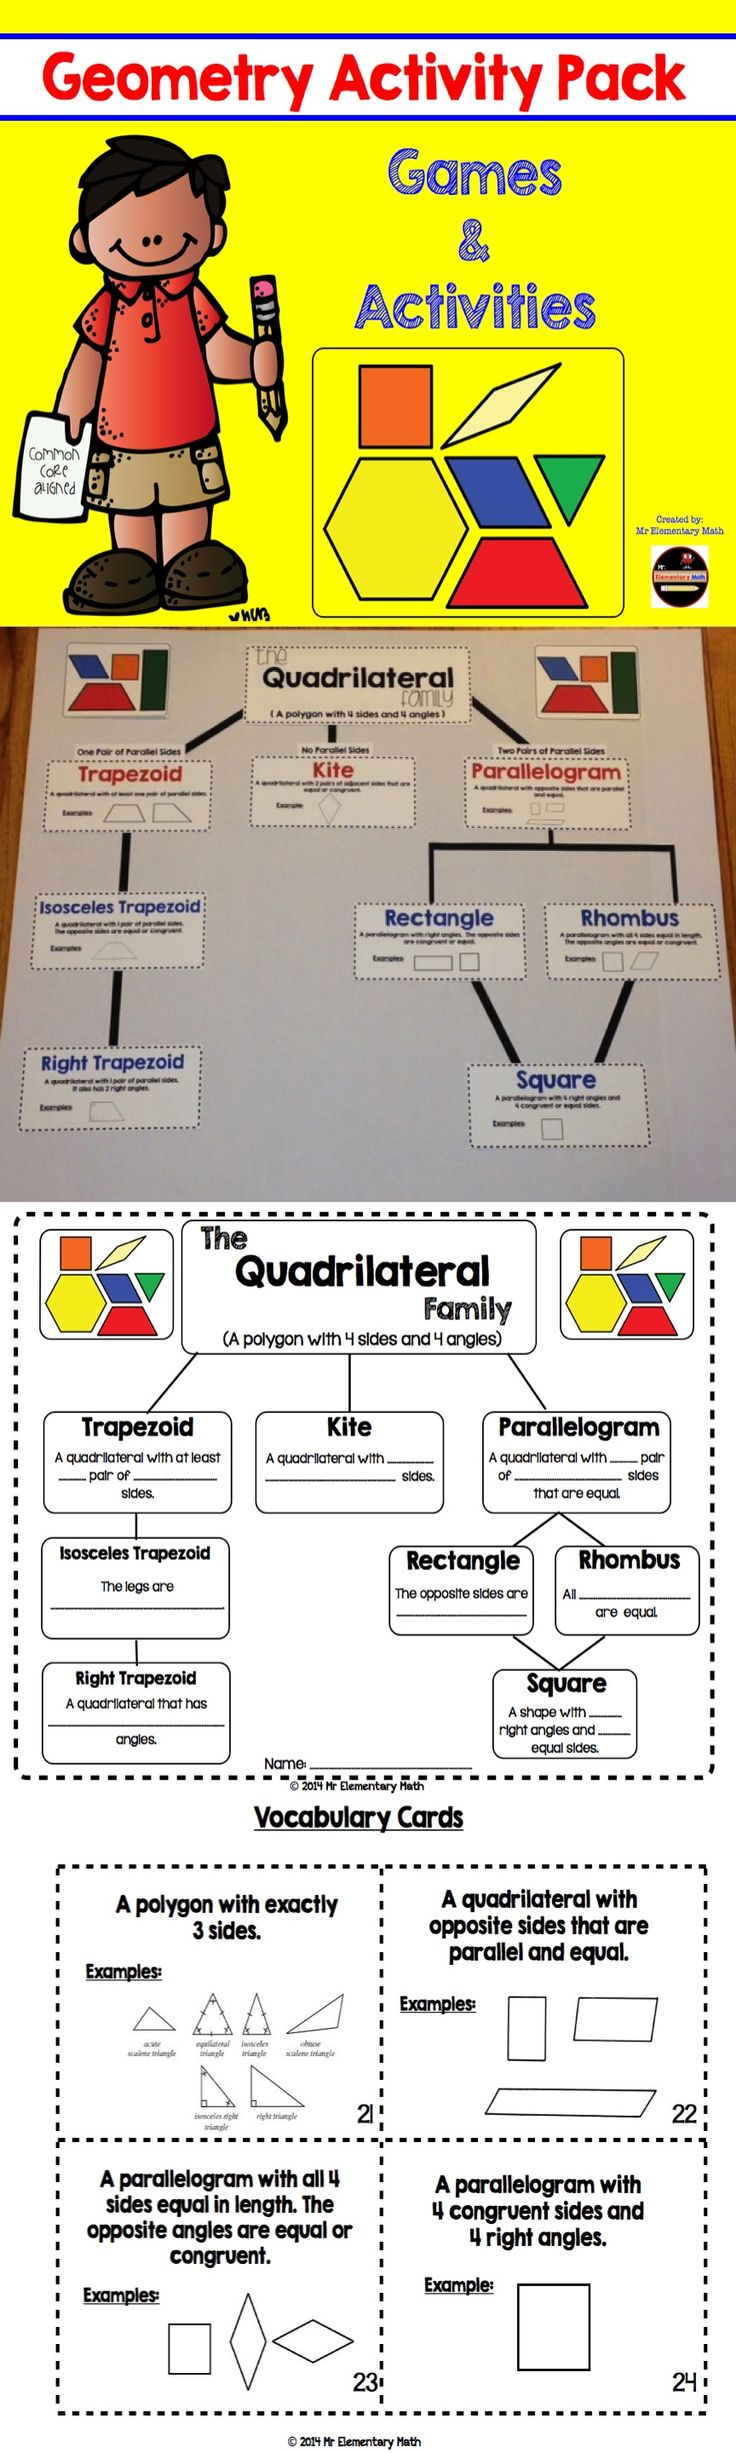 This 78 page Geometry Activity Pack is full of games, vocabulary activities, posters to strengthen your students understanding of the concept. Check it out! $